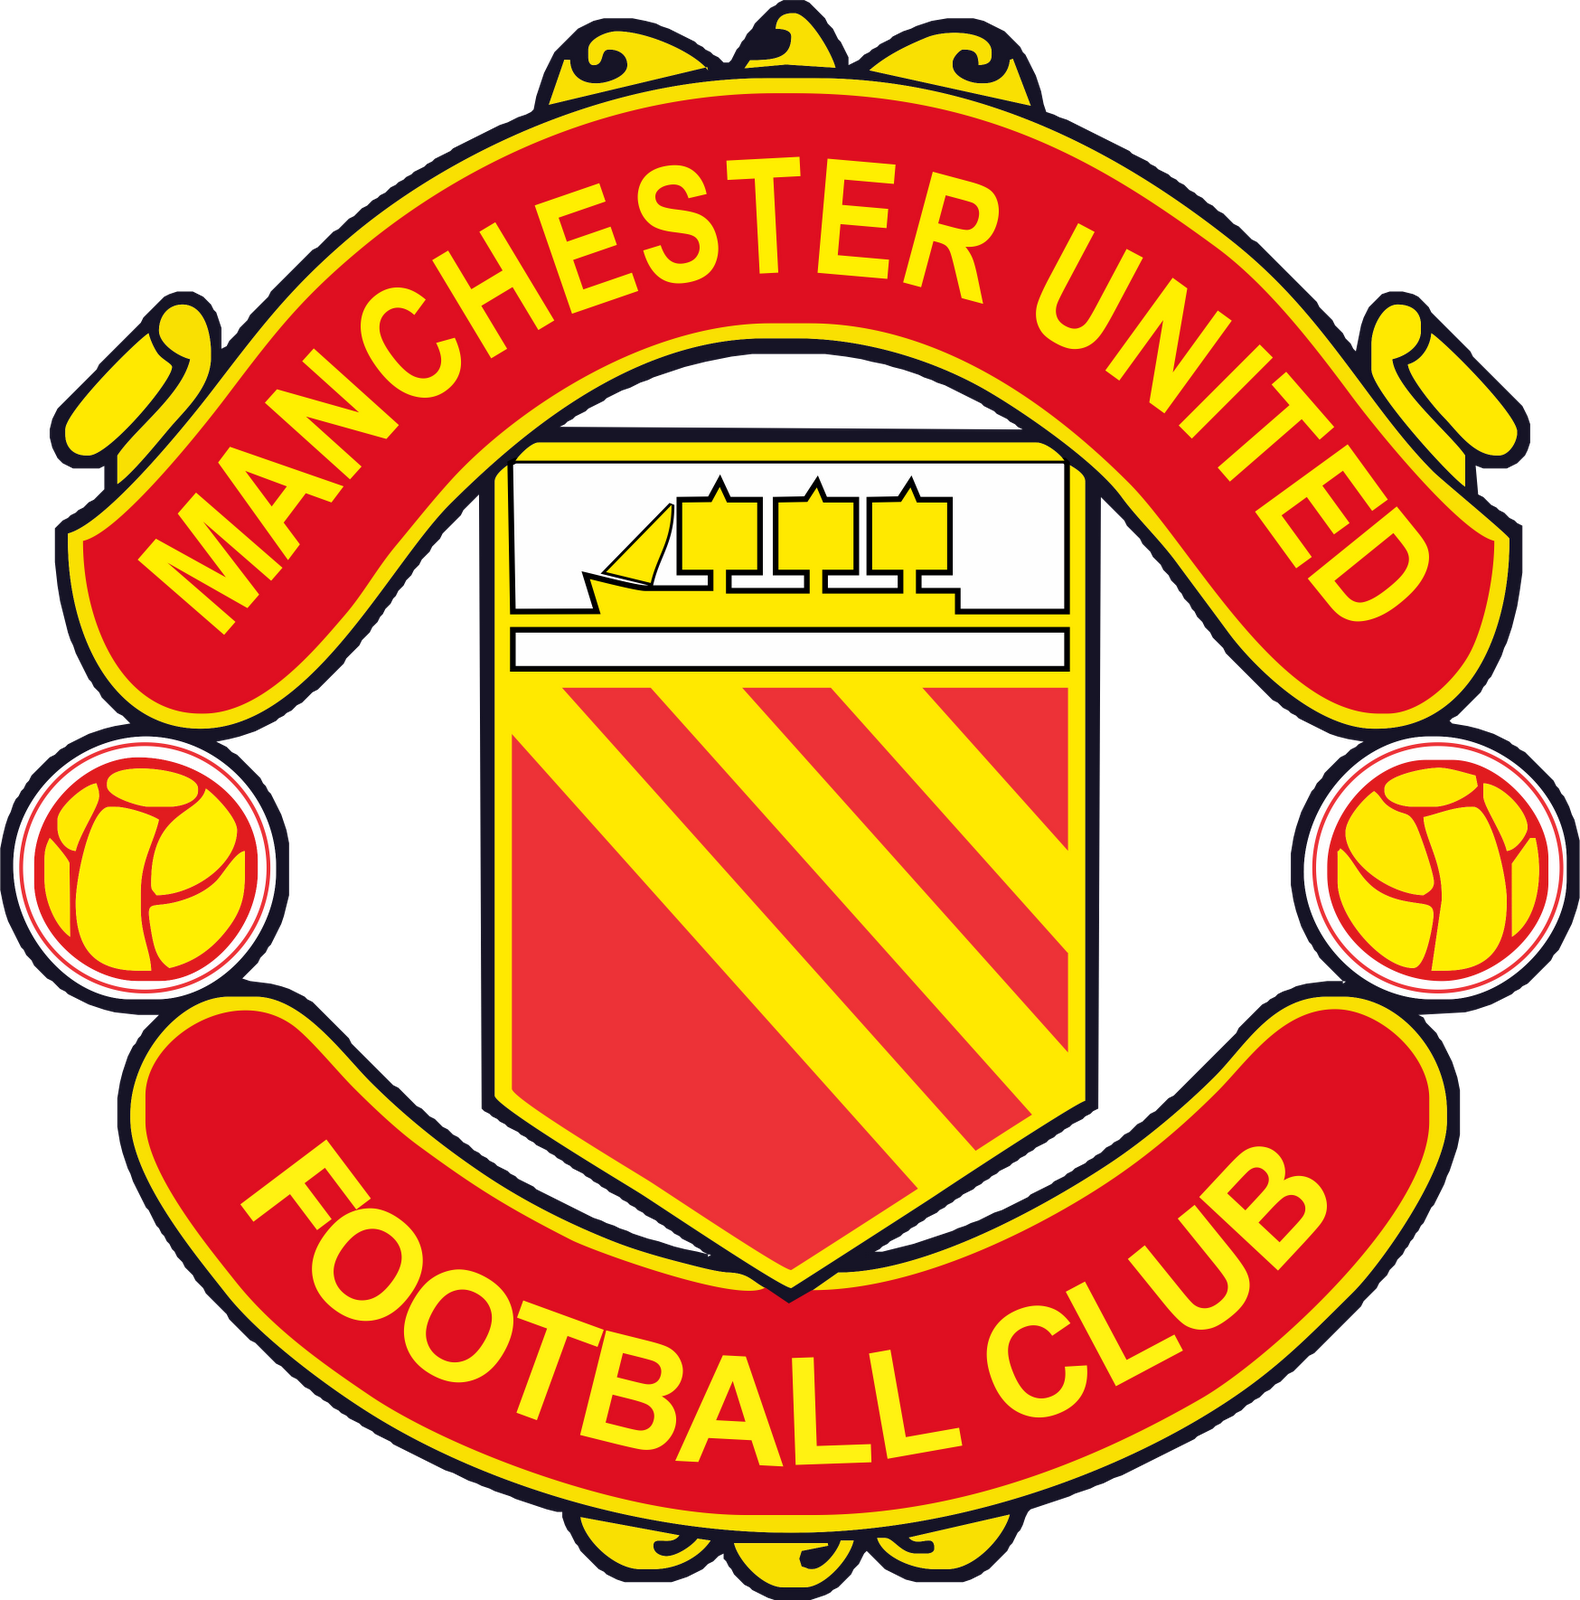 manchester united in png web icons png rh webiconspng com logo manchester united 2018 logo manchester united a colorier